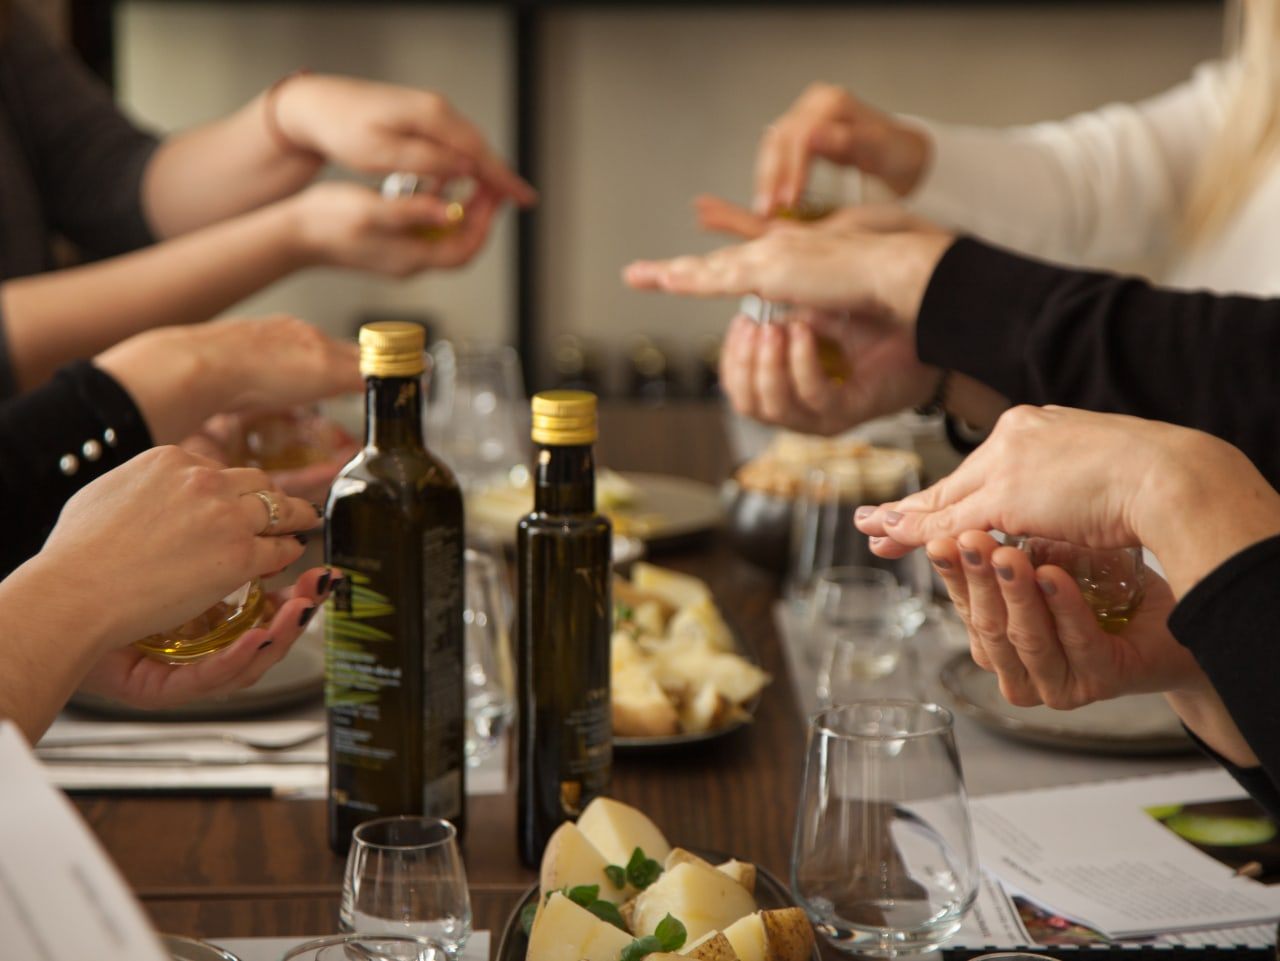 Best gastronomy experience in Heraklion Crete, Tasting The Food, Wine & Olive Oil Of Crete, cooking workshop, wine tasting iraklion crete, olive oil tasting heraklion crete, heraklion activities, irakliion things to do, cooking class with locals, cretan virgin olive oil tasting